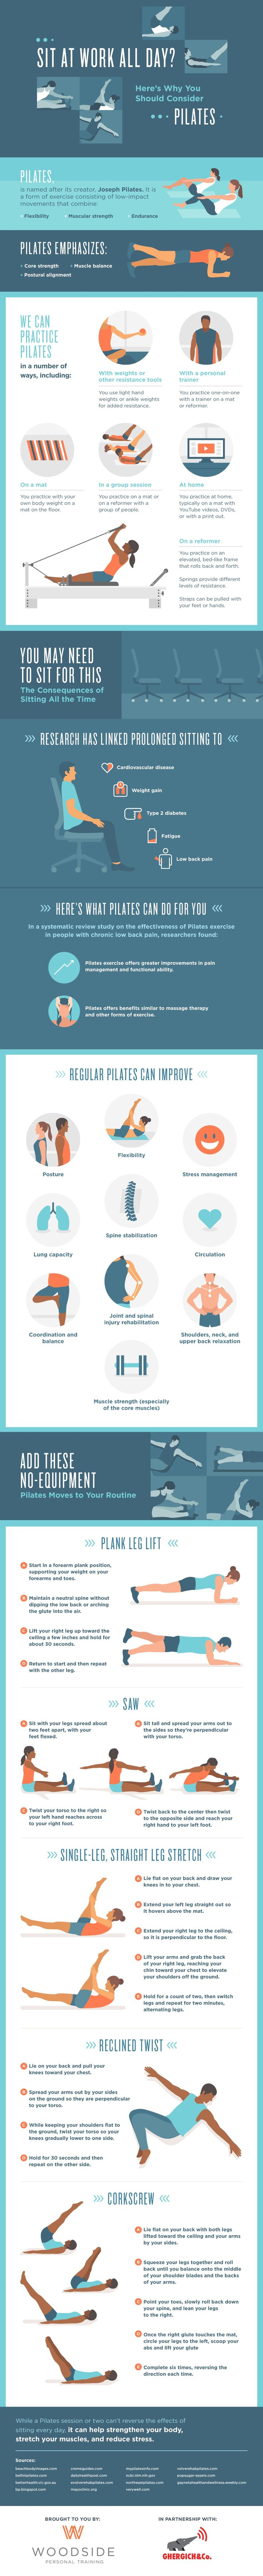 Sit at work all day? Try Pilates to fix your posture and lessen back pain. Check out the benefits of Pilates in this infographic!